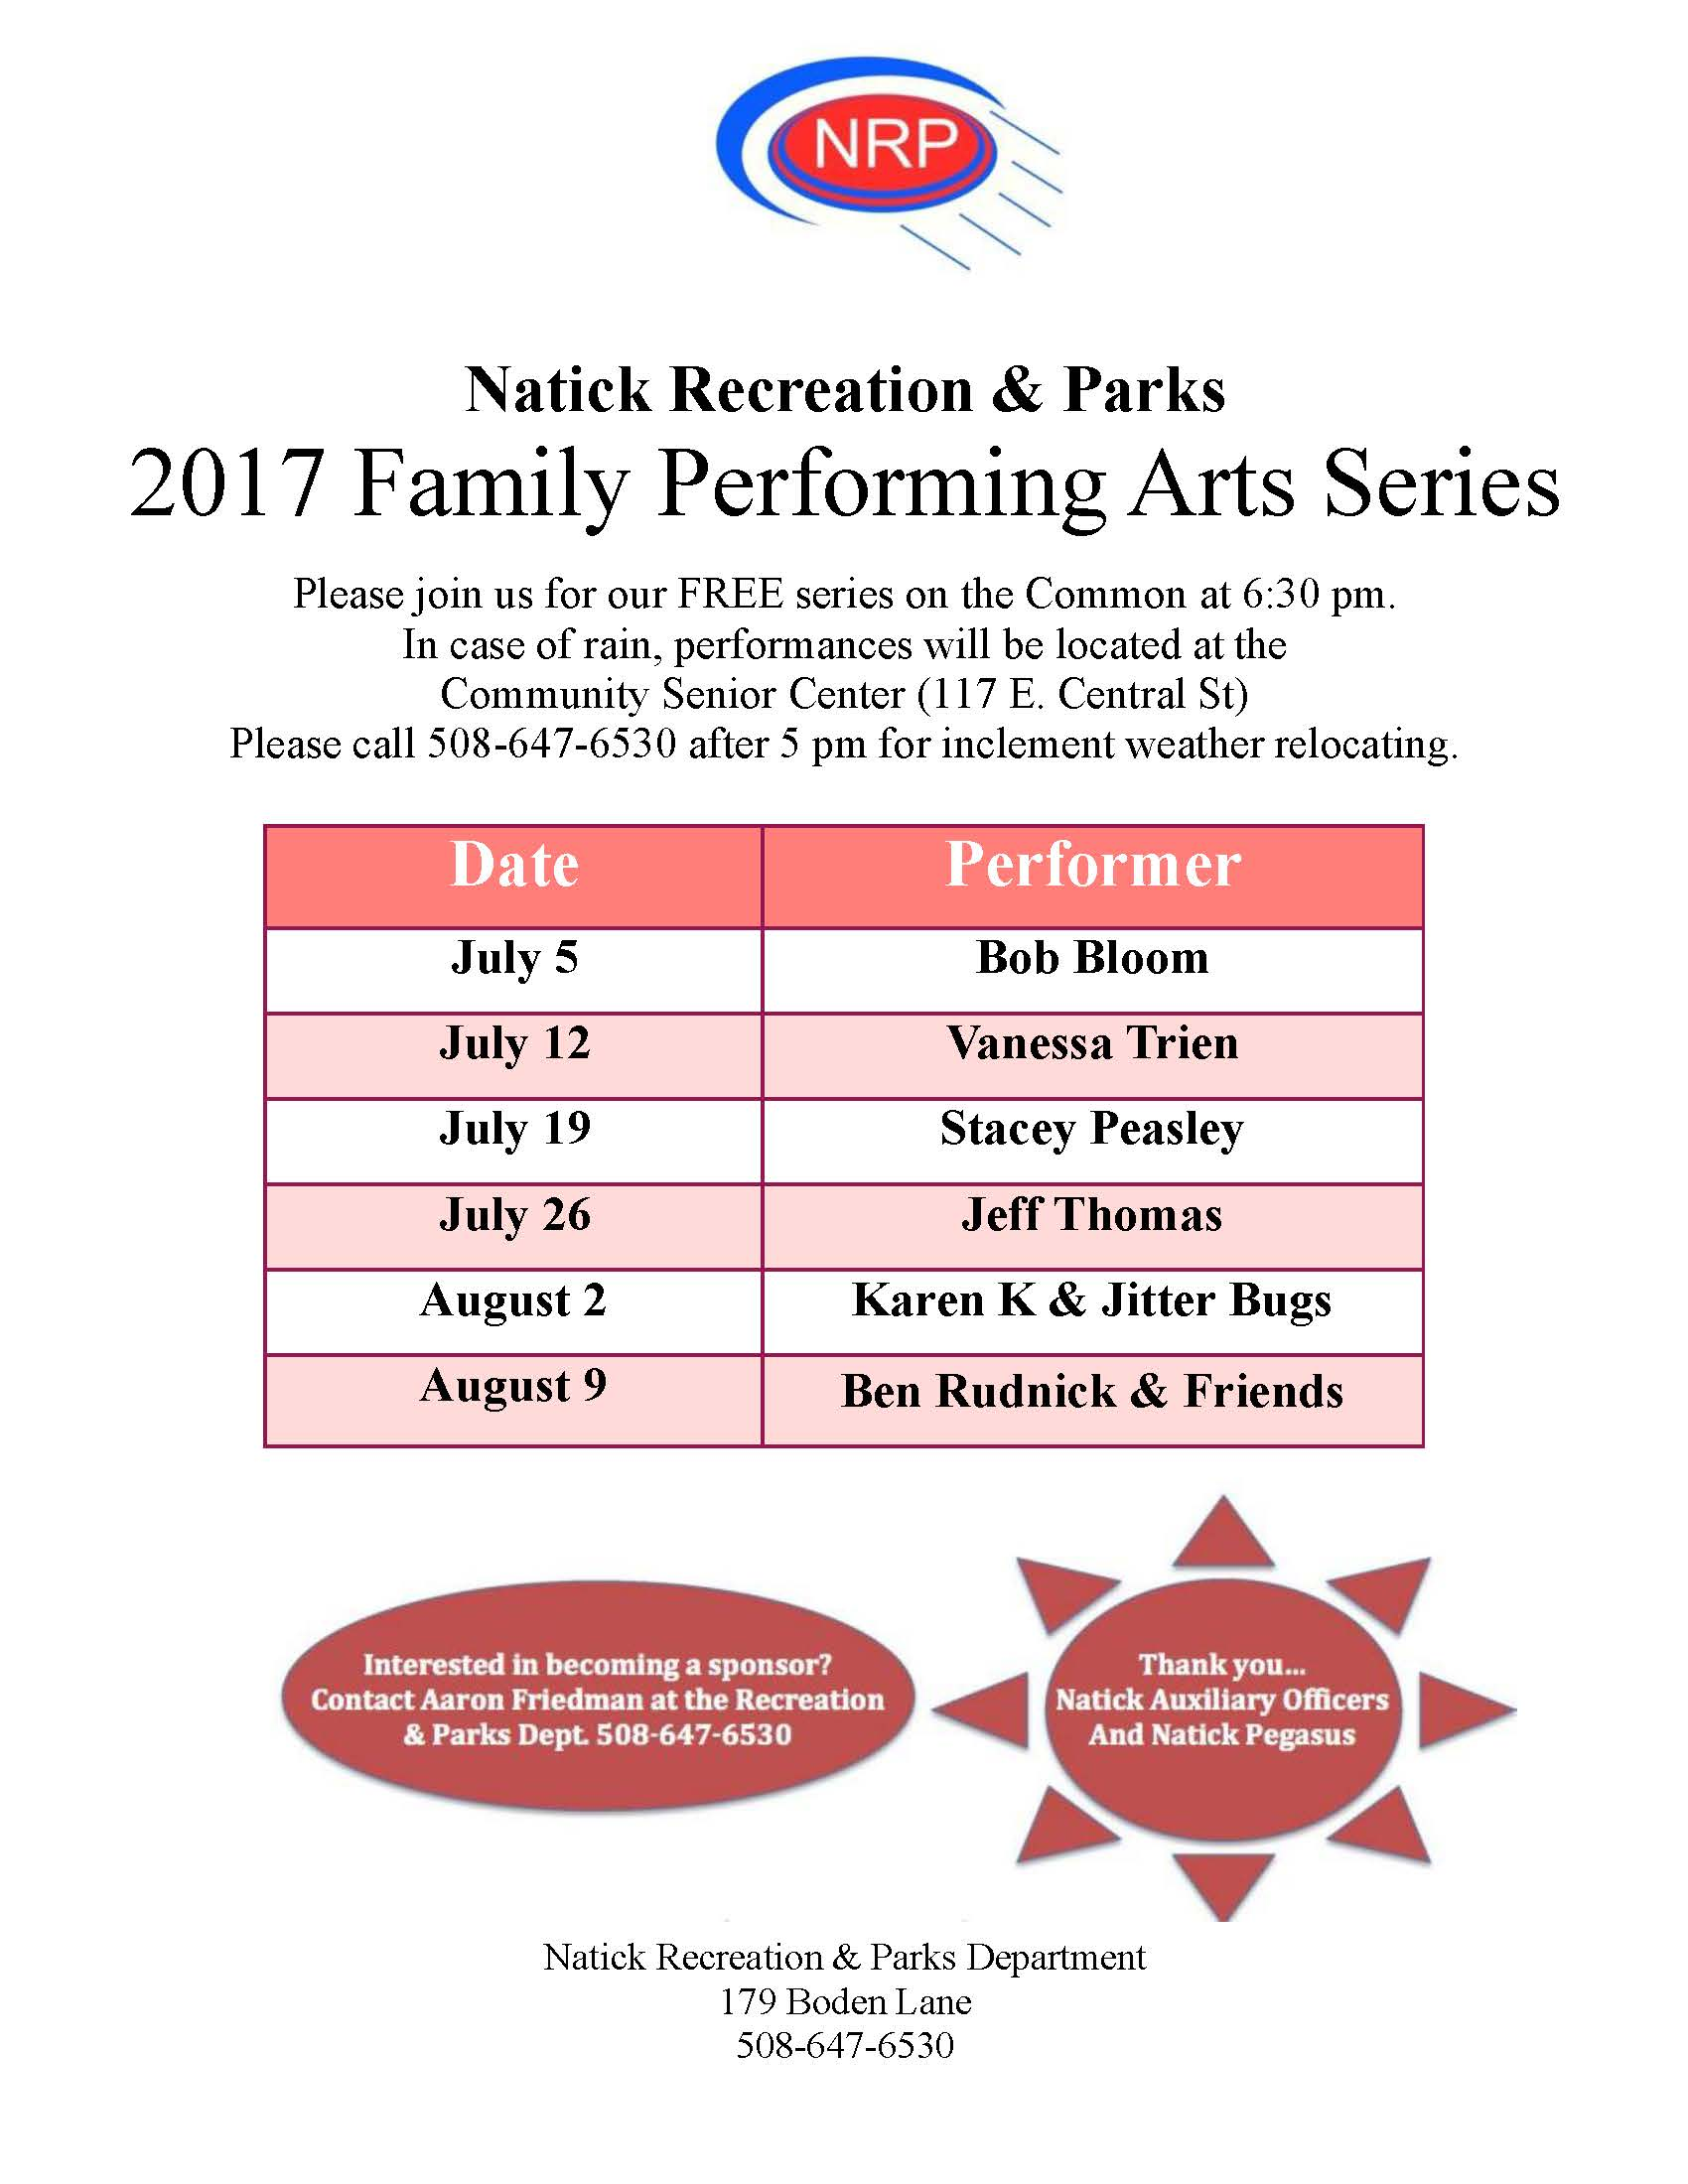 Family Performing Arts Series 2017